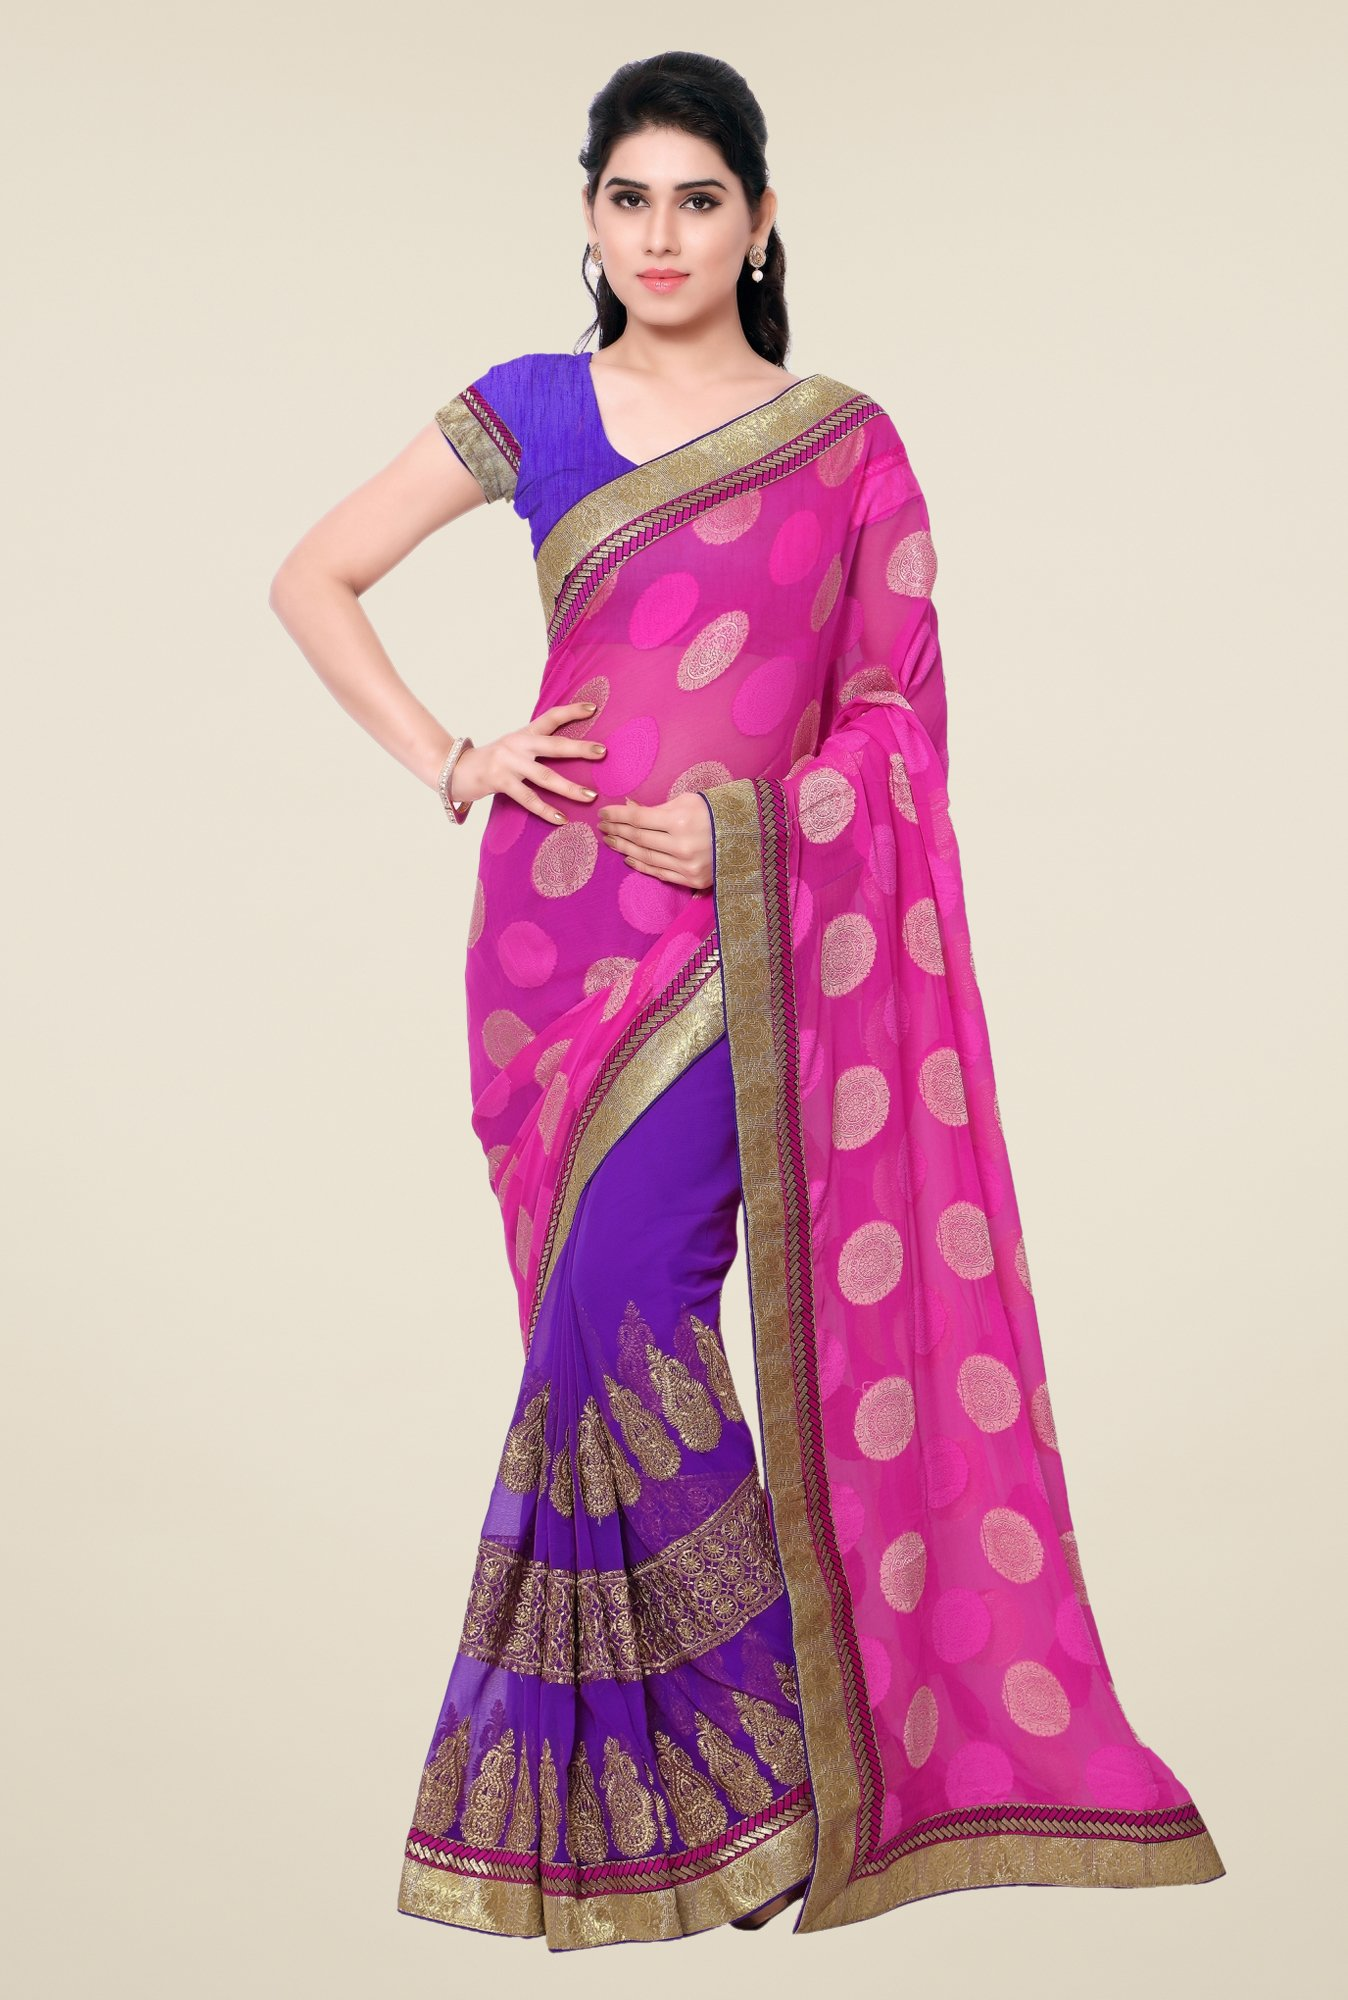 Triveni Purple & Pink Printed Georgette Chiffon Saree